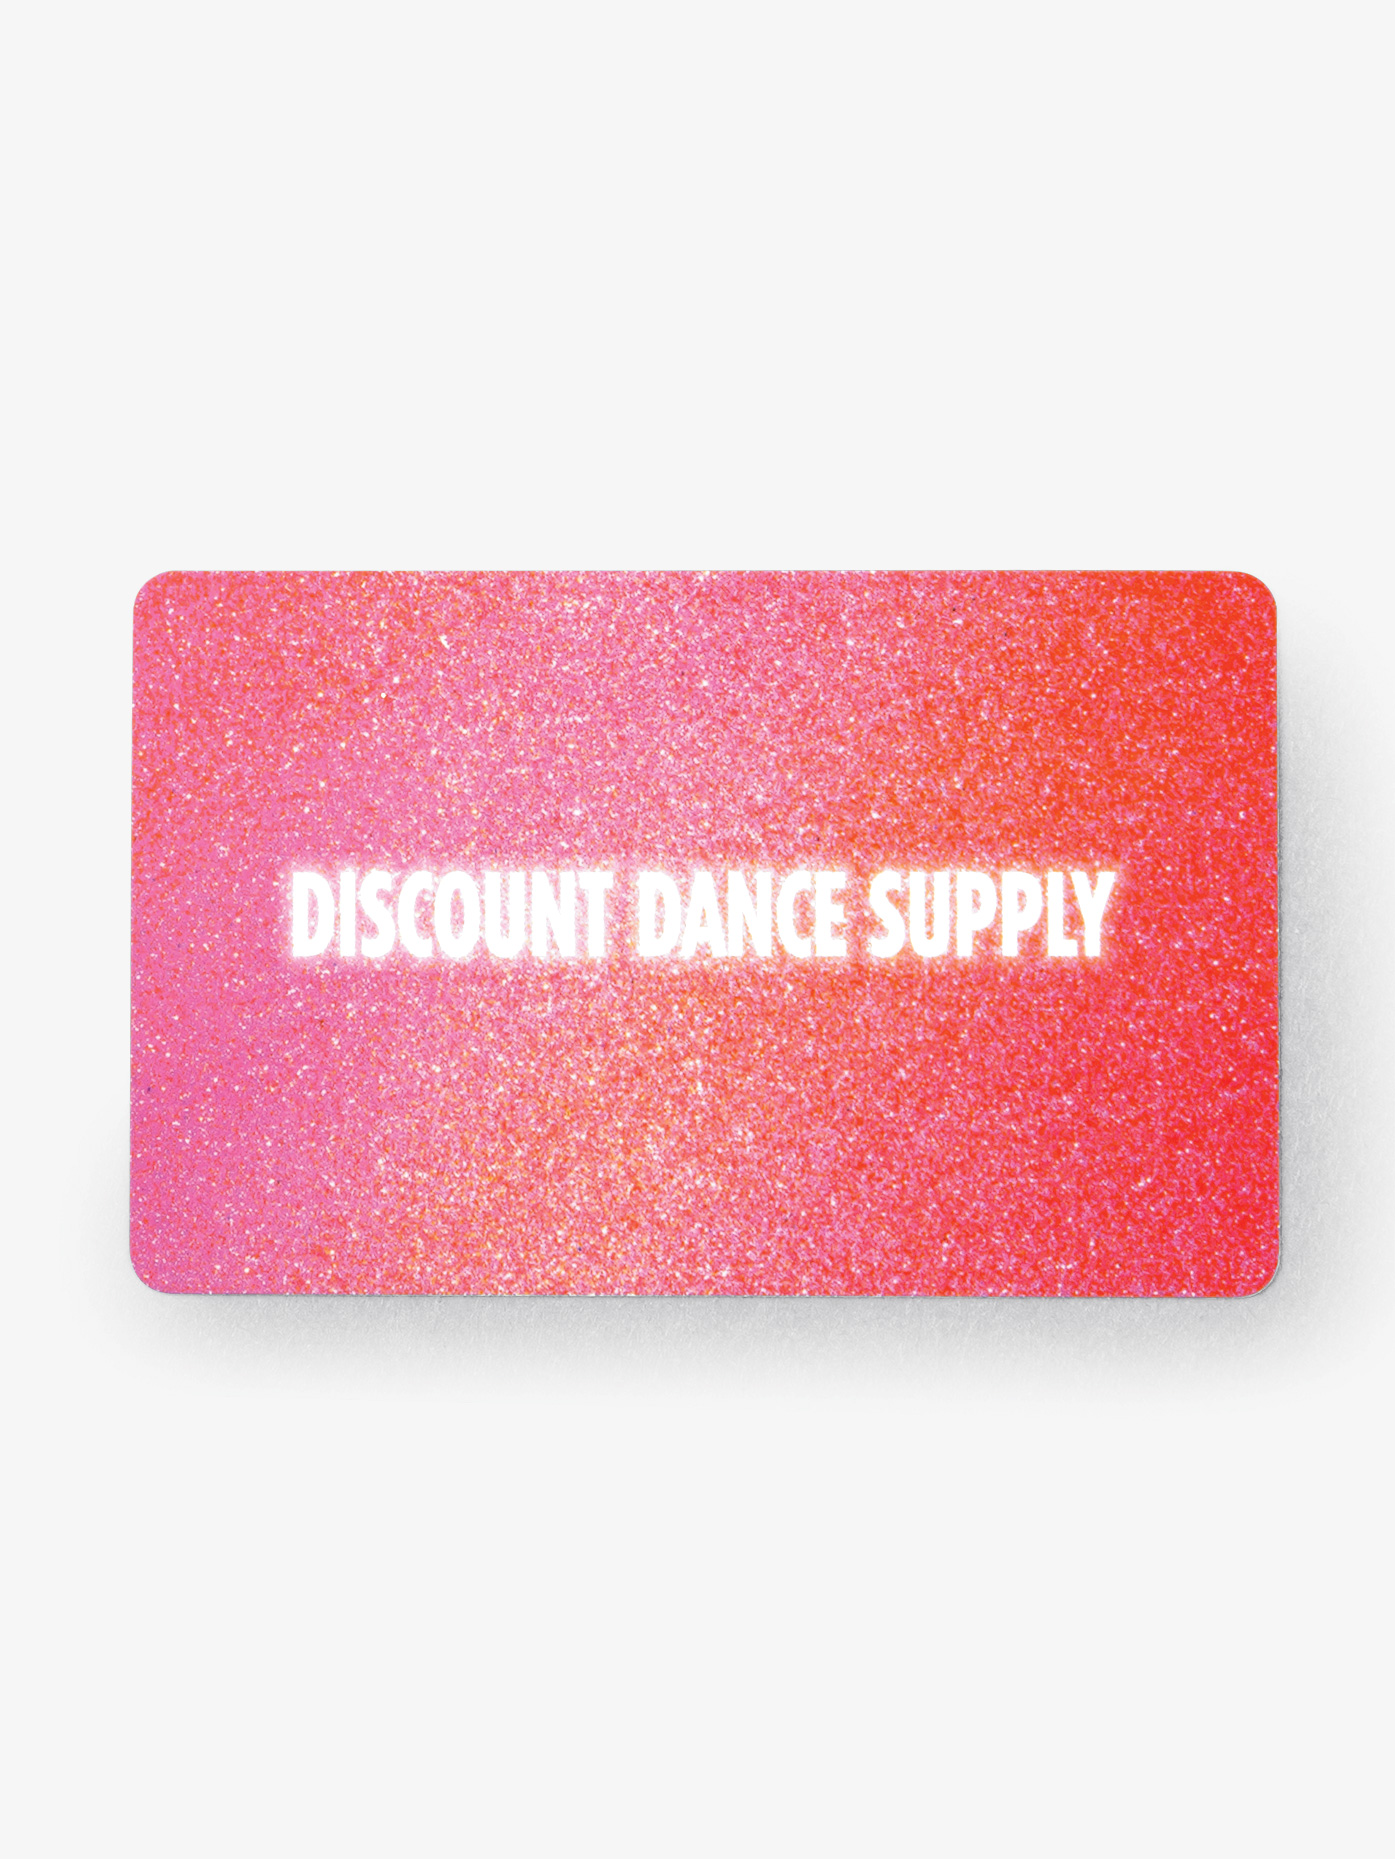 Gift Card | Discount Dance Supply GIFTCARD | DiscountDance.com